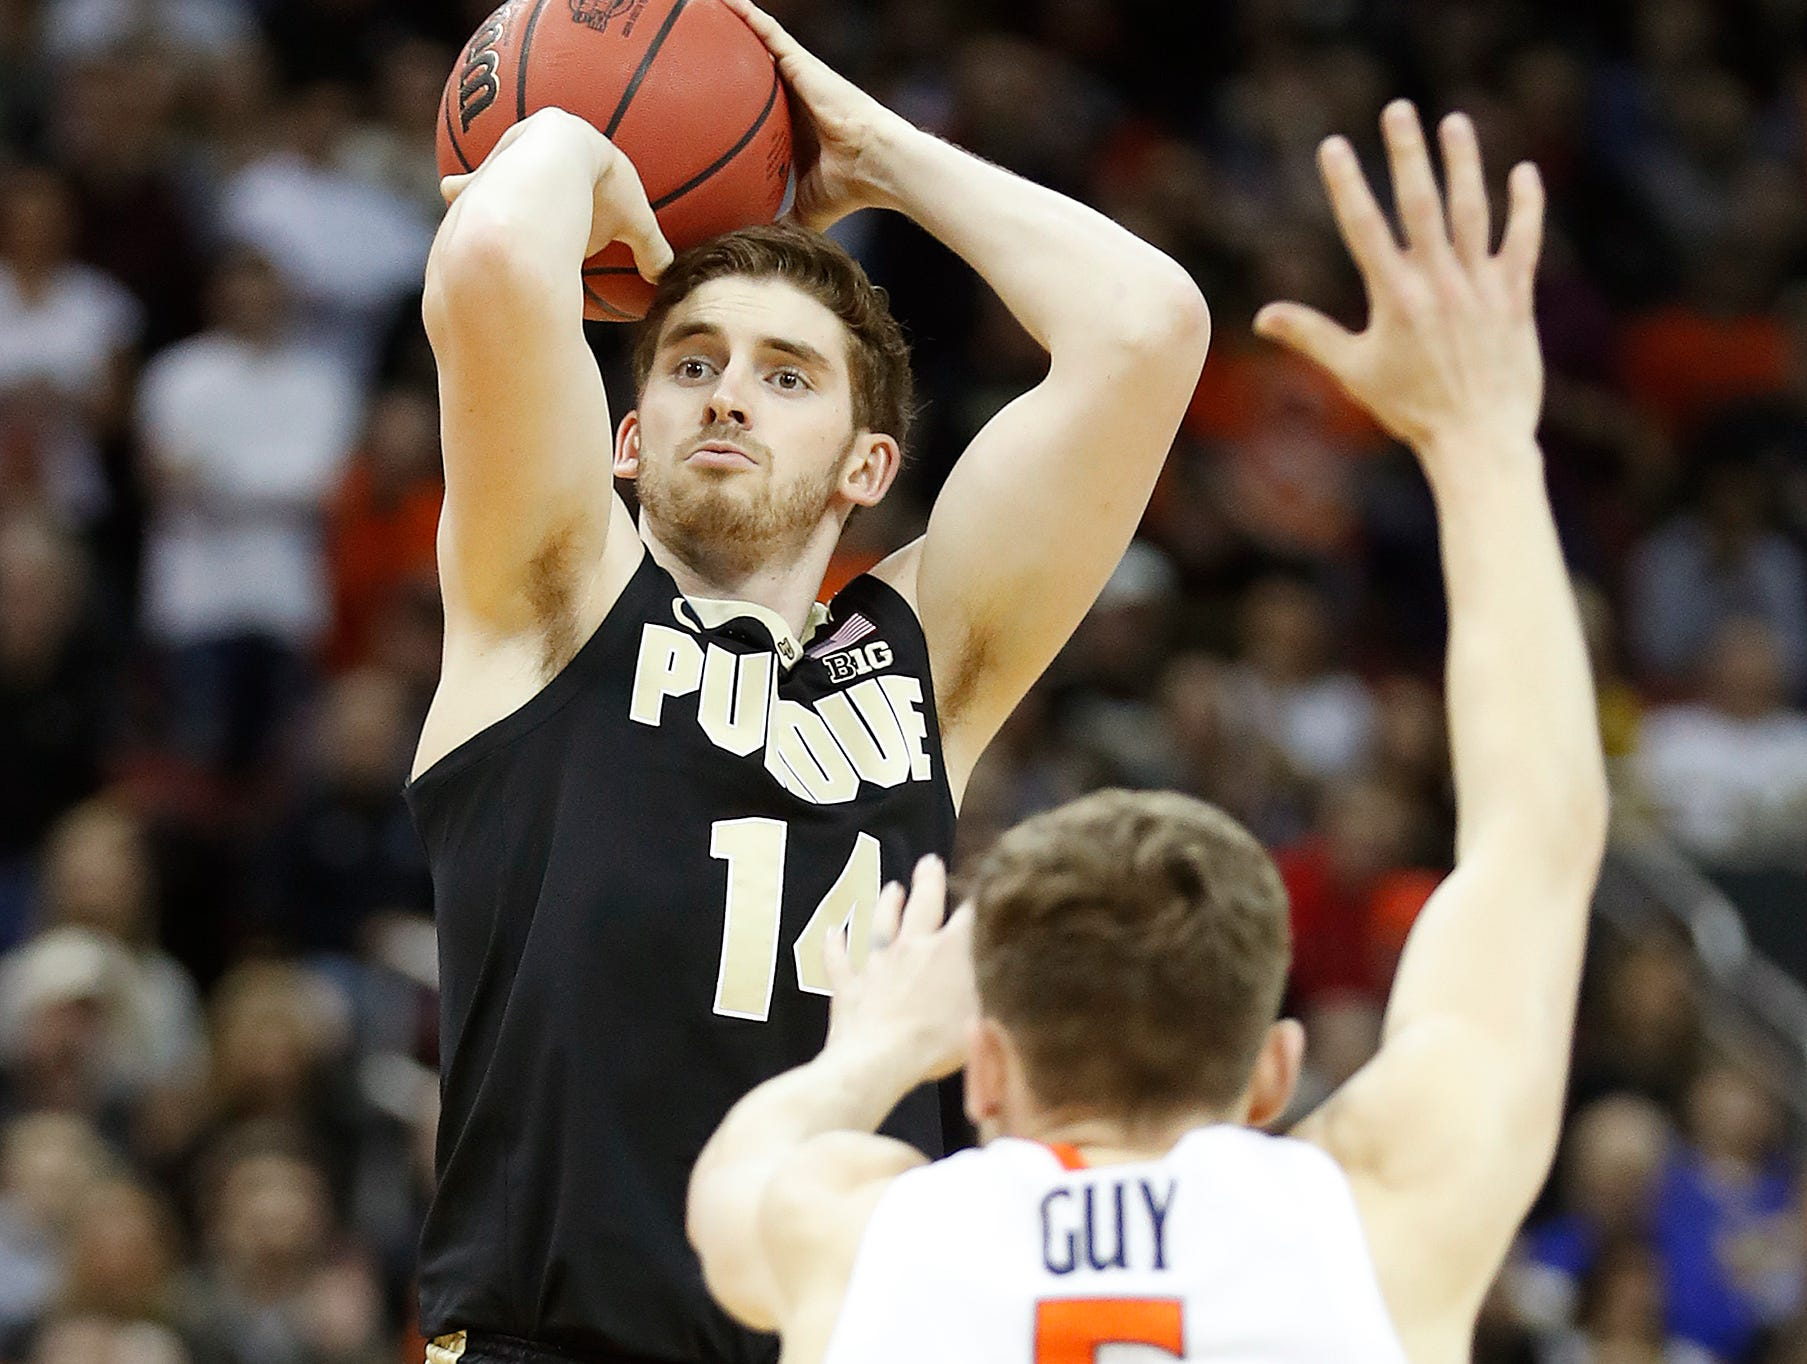 "Purdue Boilermakers guard Ryan Cline (14) shoots a three point basket over Virginia Cavaliers guard Kyle Guy (5) in the first half of their NCAA Division I Basketball Championship ""Elite 8"" basketball game at the KFC Yum! Center in Louisville, KY., on Saturday, Mar 30, 2019."